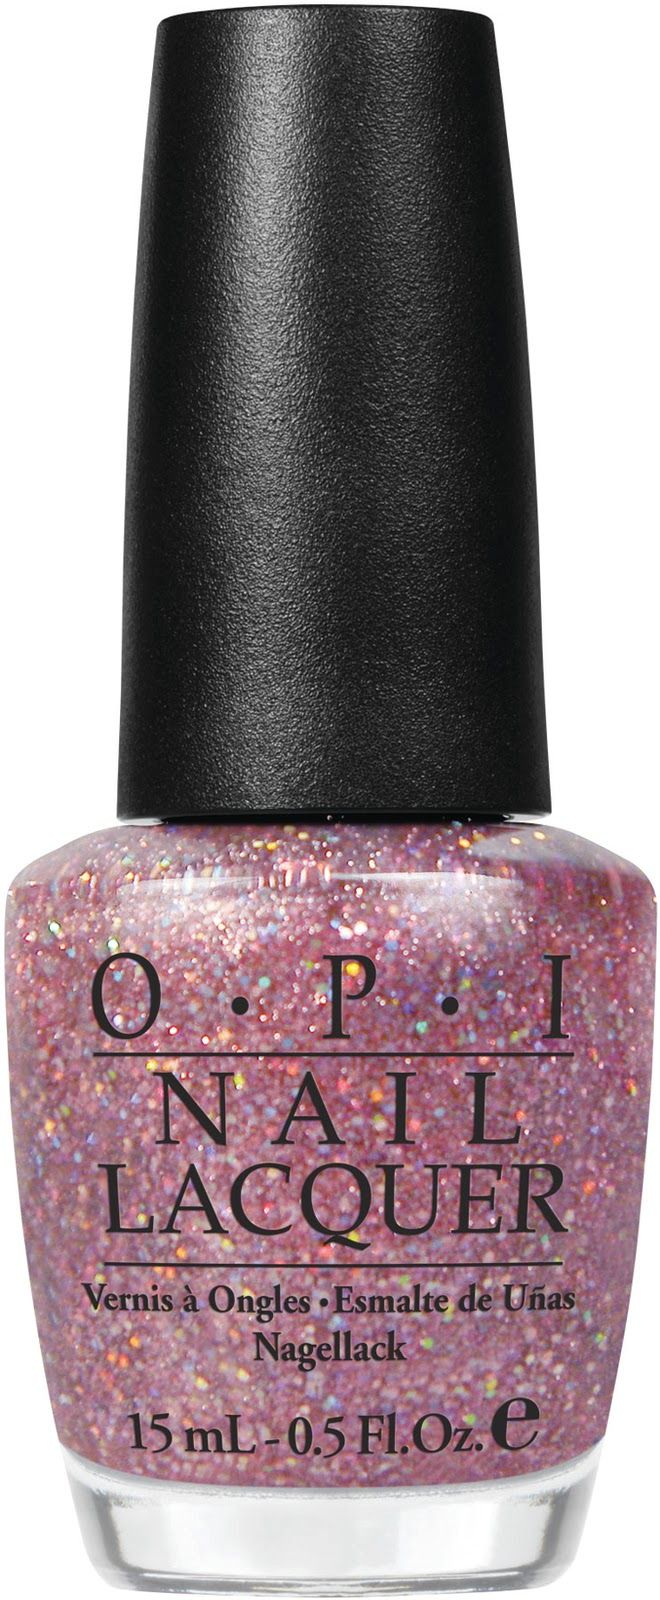 109 best NAILS-OPI images on Pinterest | Manicures, Nail polish and ...